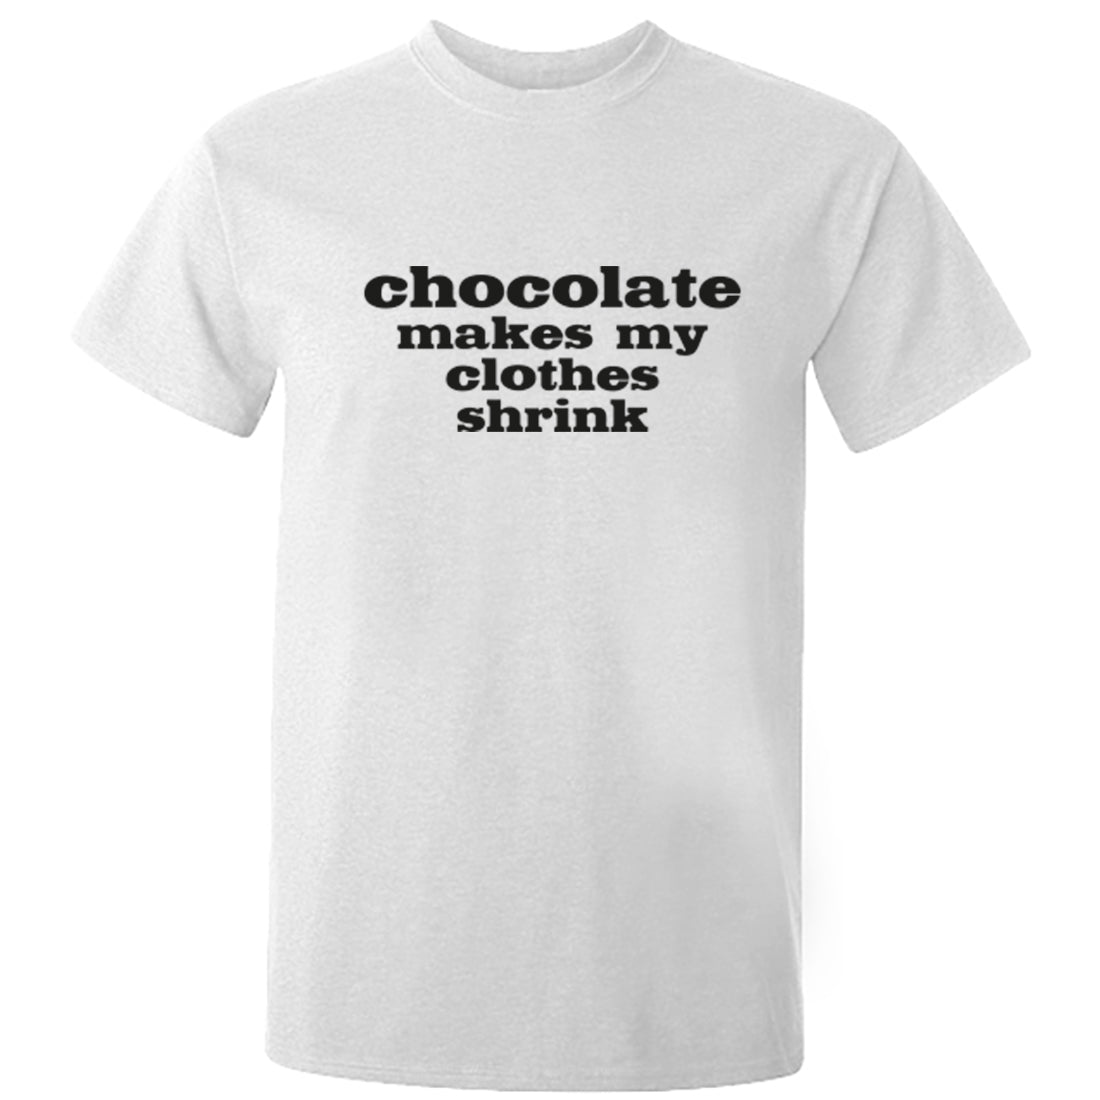 Chocolate Makes My Clothes Shrink Unisex Fit T-Shirt K1873 - Illustrated Identity Ltd.